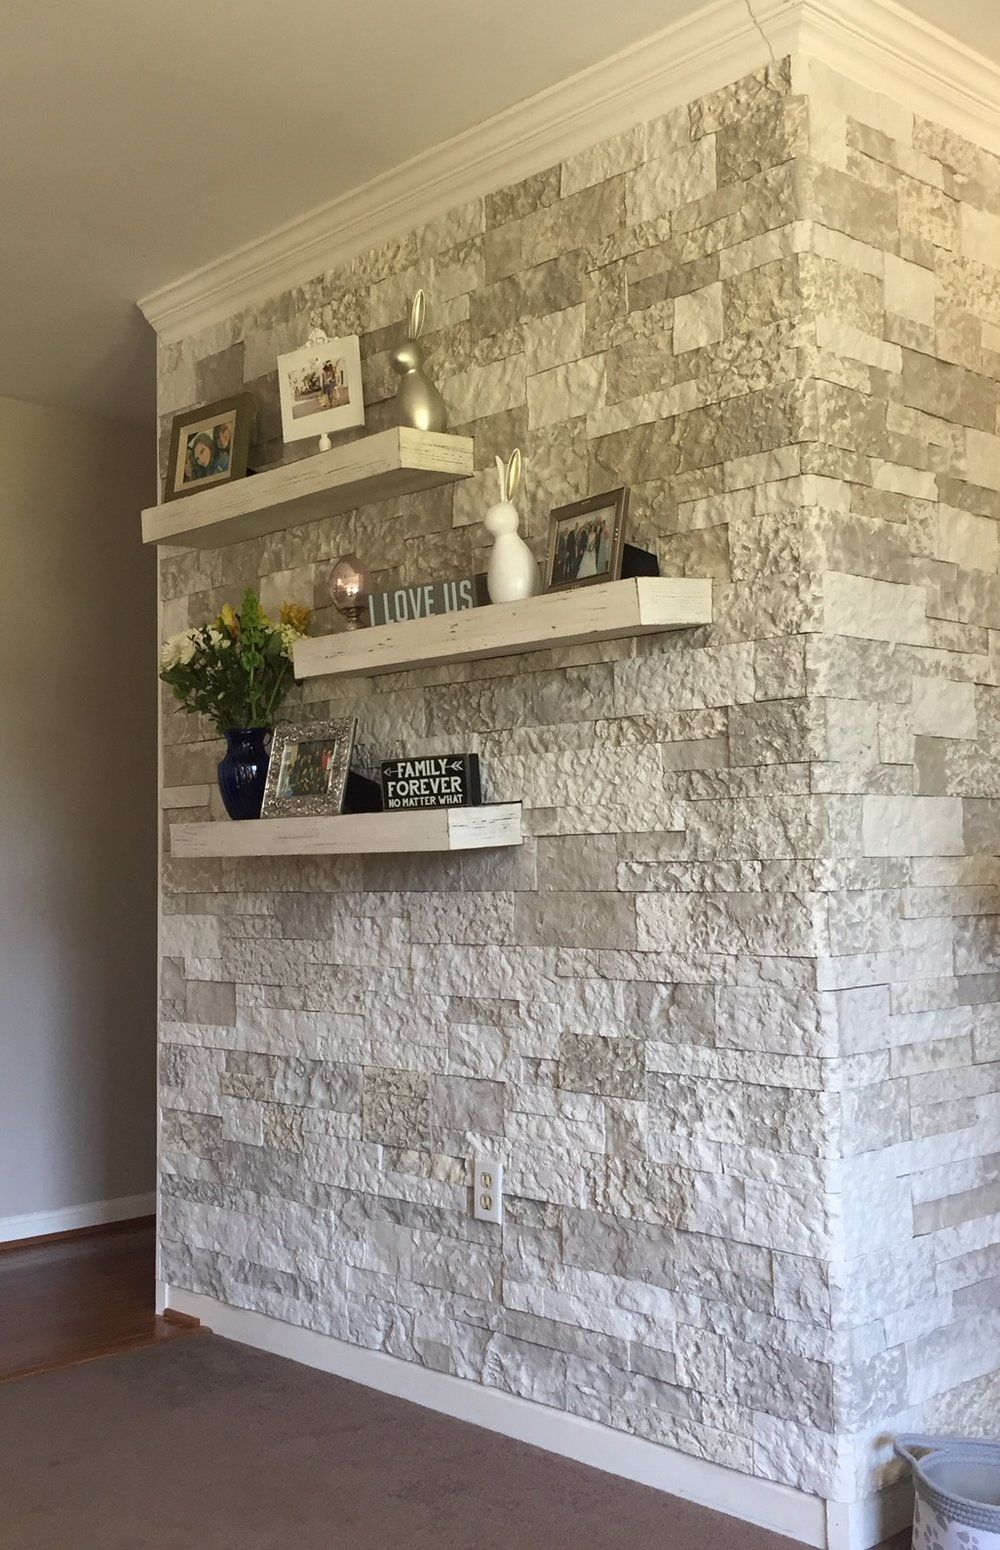 How To Install Stacked Stone Tile On Drywall Stone Walls Interior Accent Walls In Living Room Stone Accent Walls #stone #tiles #for #living #room #wall